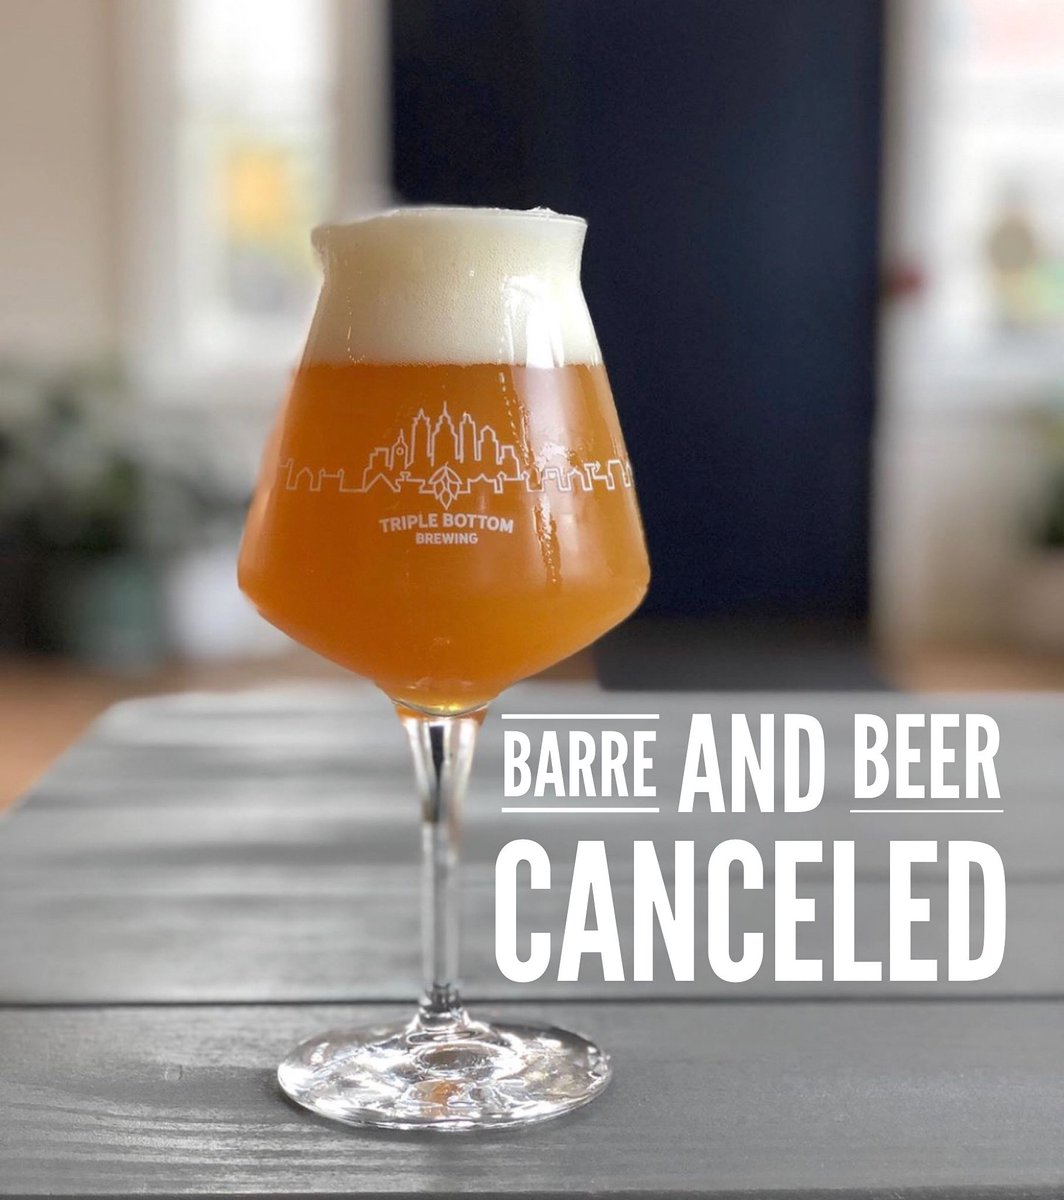 #barreandbeer scheduled for this Sunday @triplebottombrewing has been canceled- we hope to reschedule in the future #barre #beer #craftbeer #philly #philadelphia